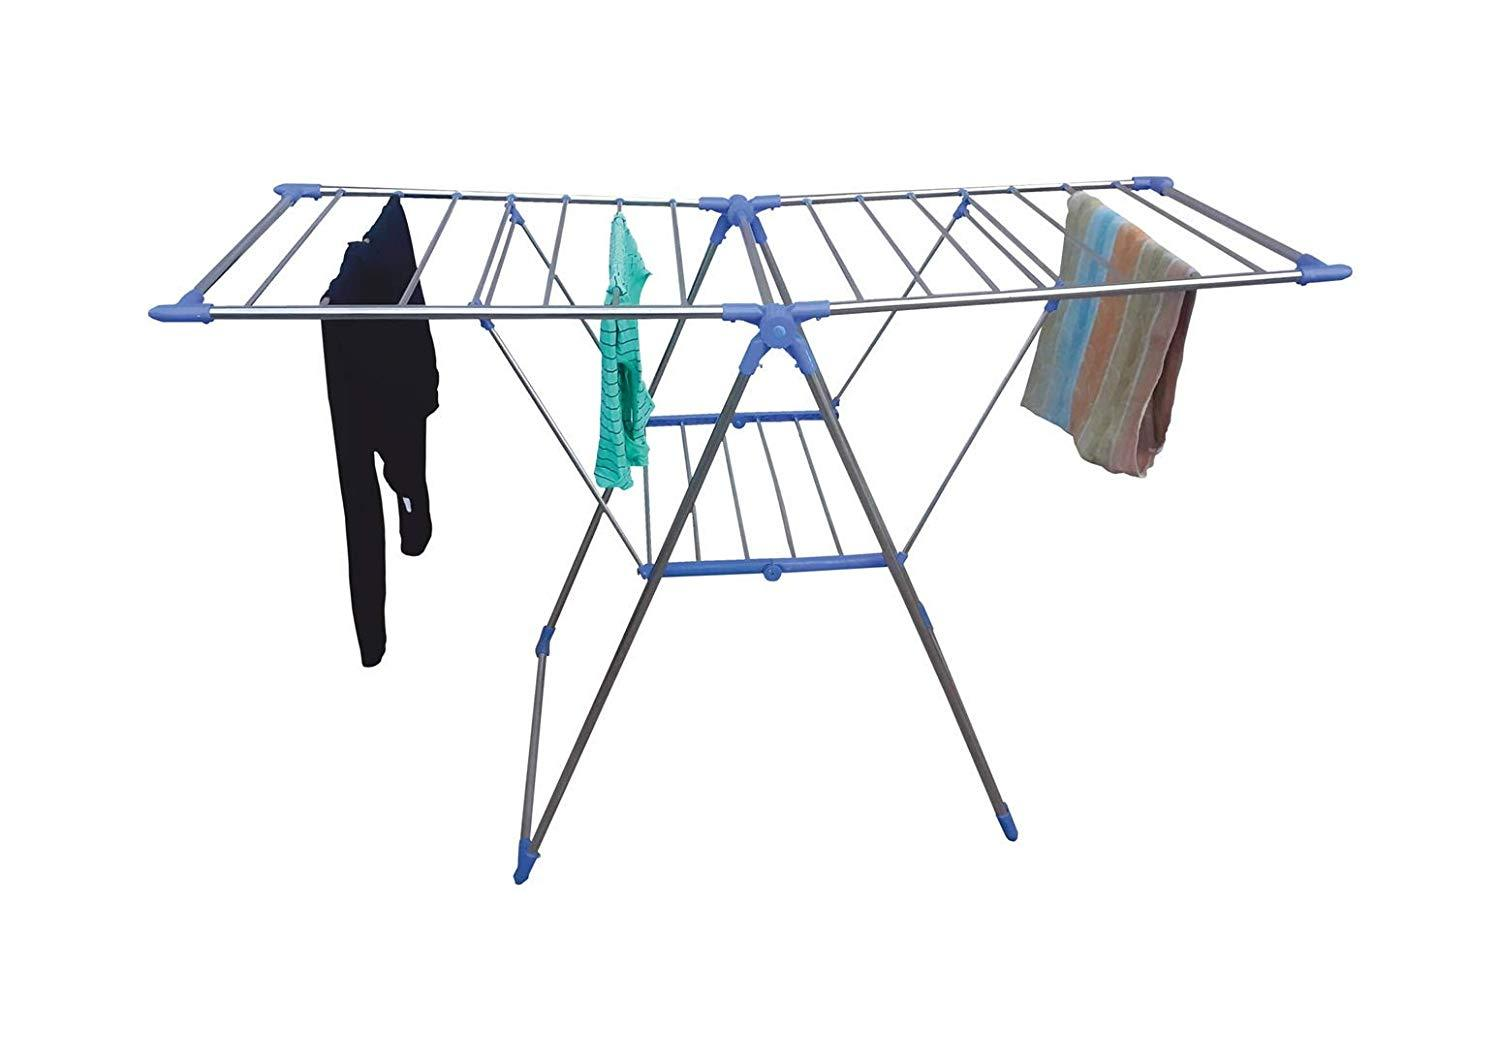 731 Adjustable Stainless Steel 2-Wings Foldable Butterfly Cloth Drying Stand/Rack